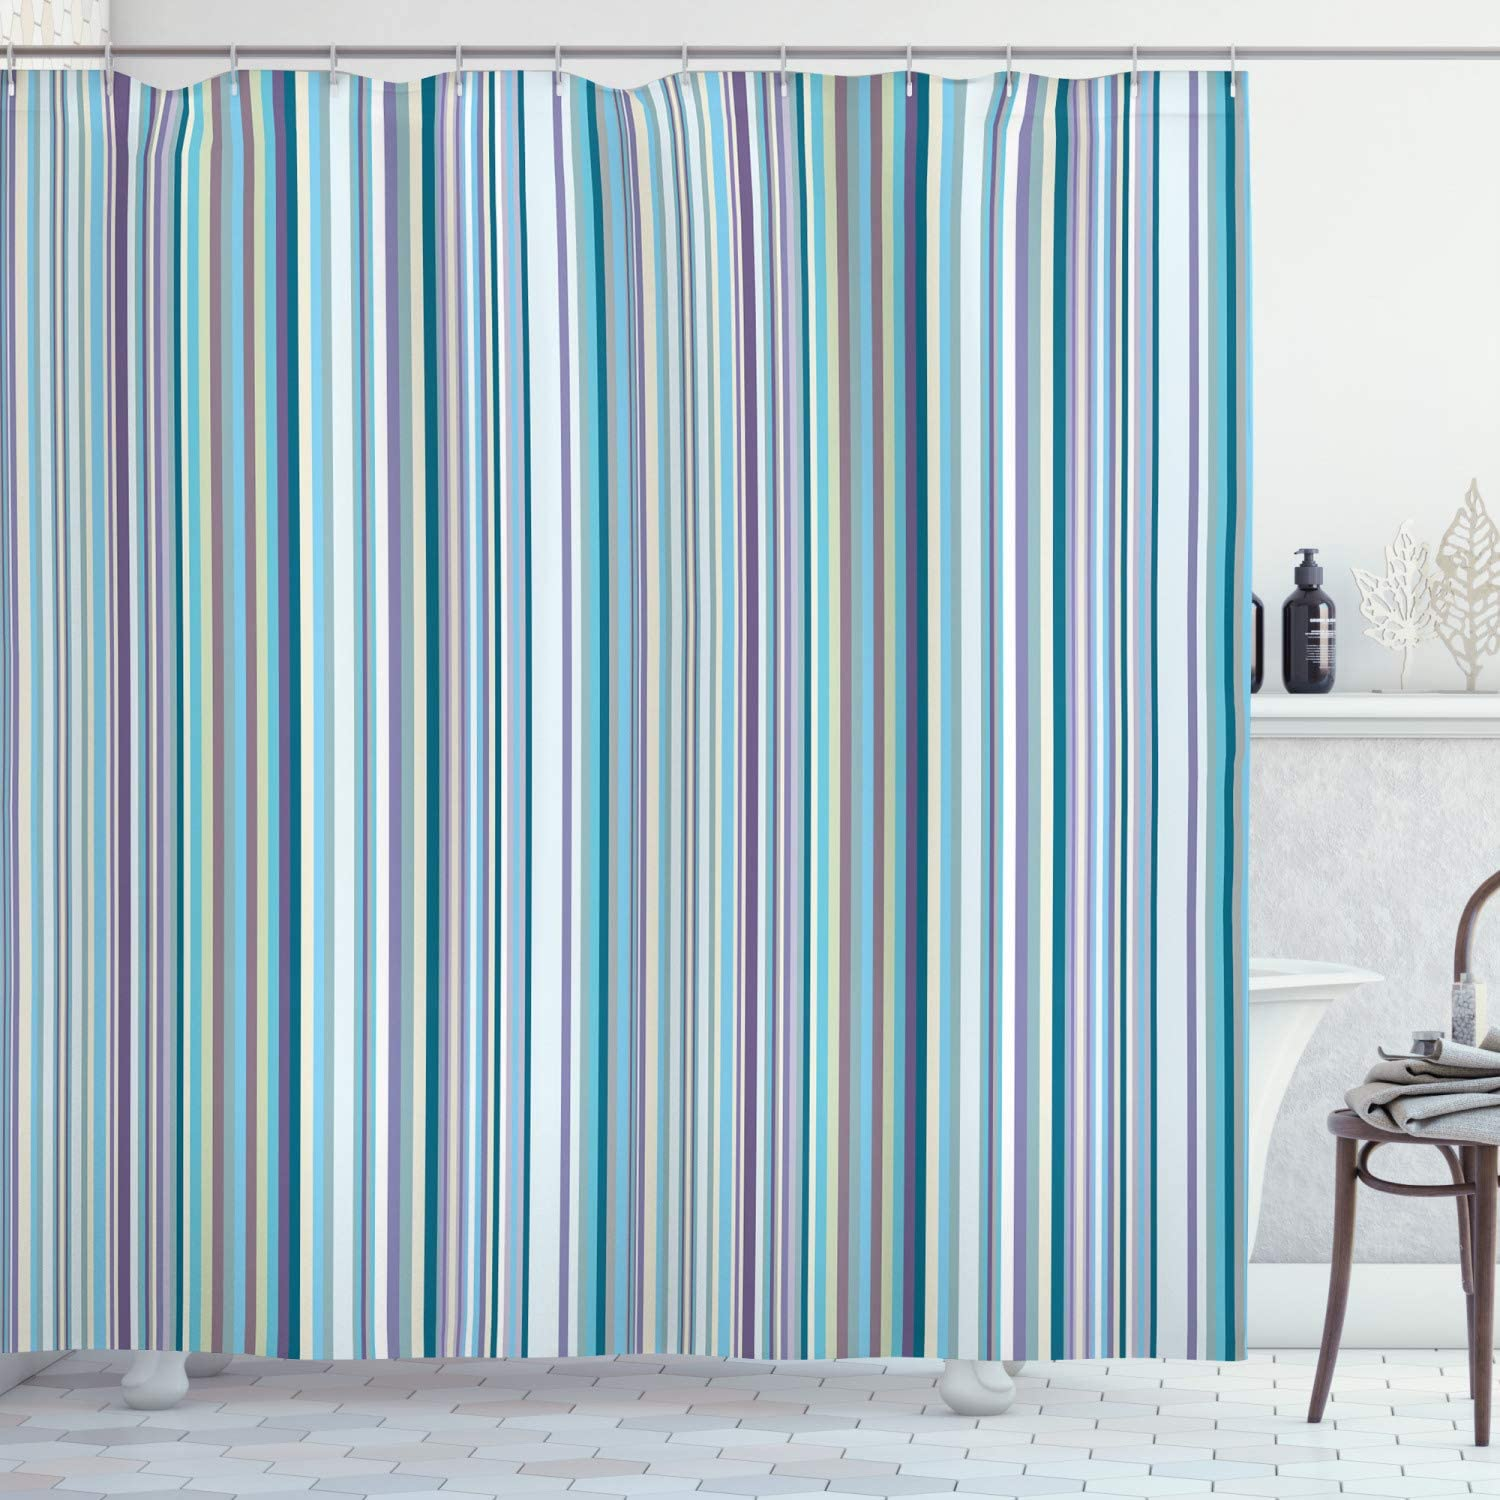 """Ambesonne Striped Shower Curtain, Blue Purple Teal Aqua Lavender Colored Vertical Stripes Geometric Abstract Vintage, Cloth Fabric Bathroom Decor Set with Hooks, 84"""" Long Extra, Light Blue"""